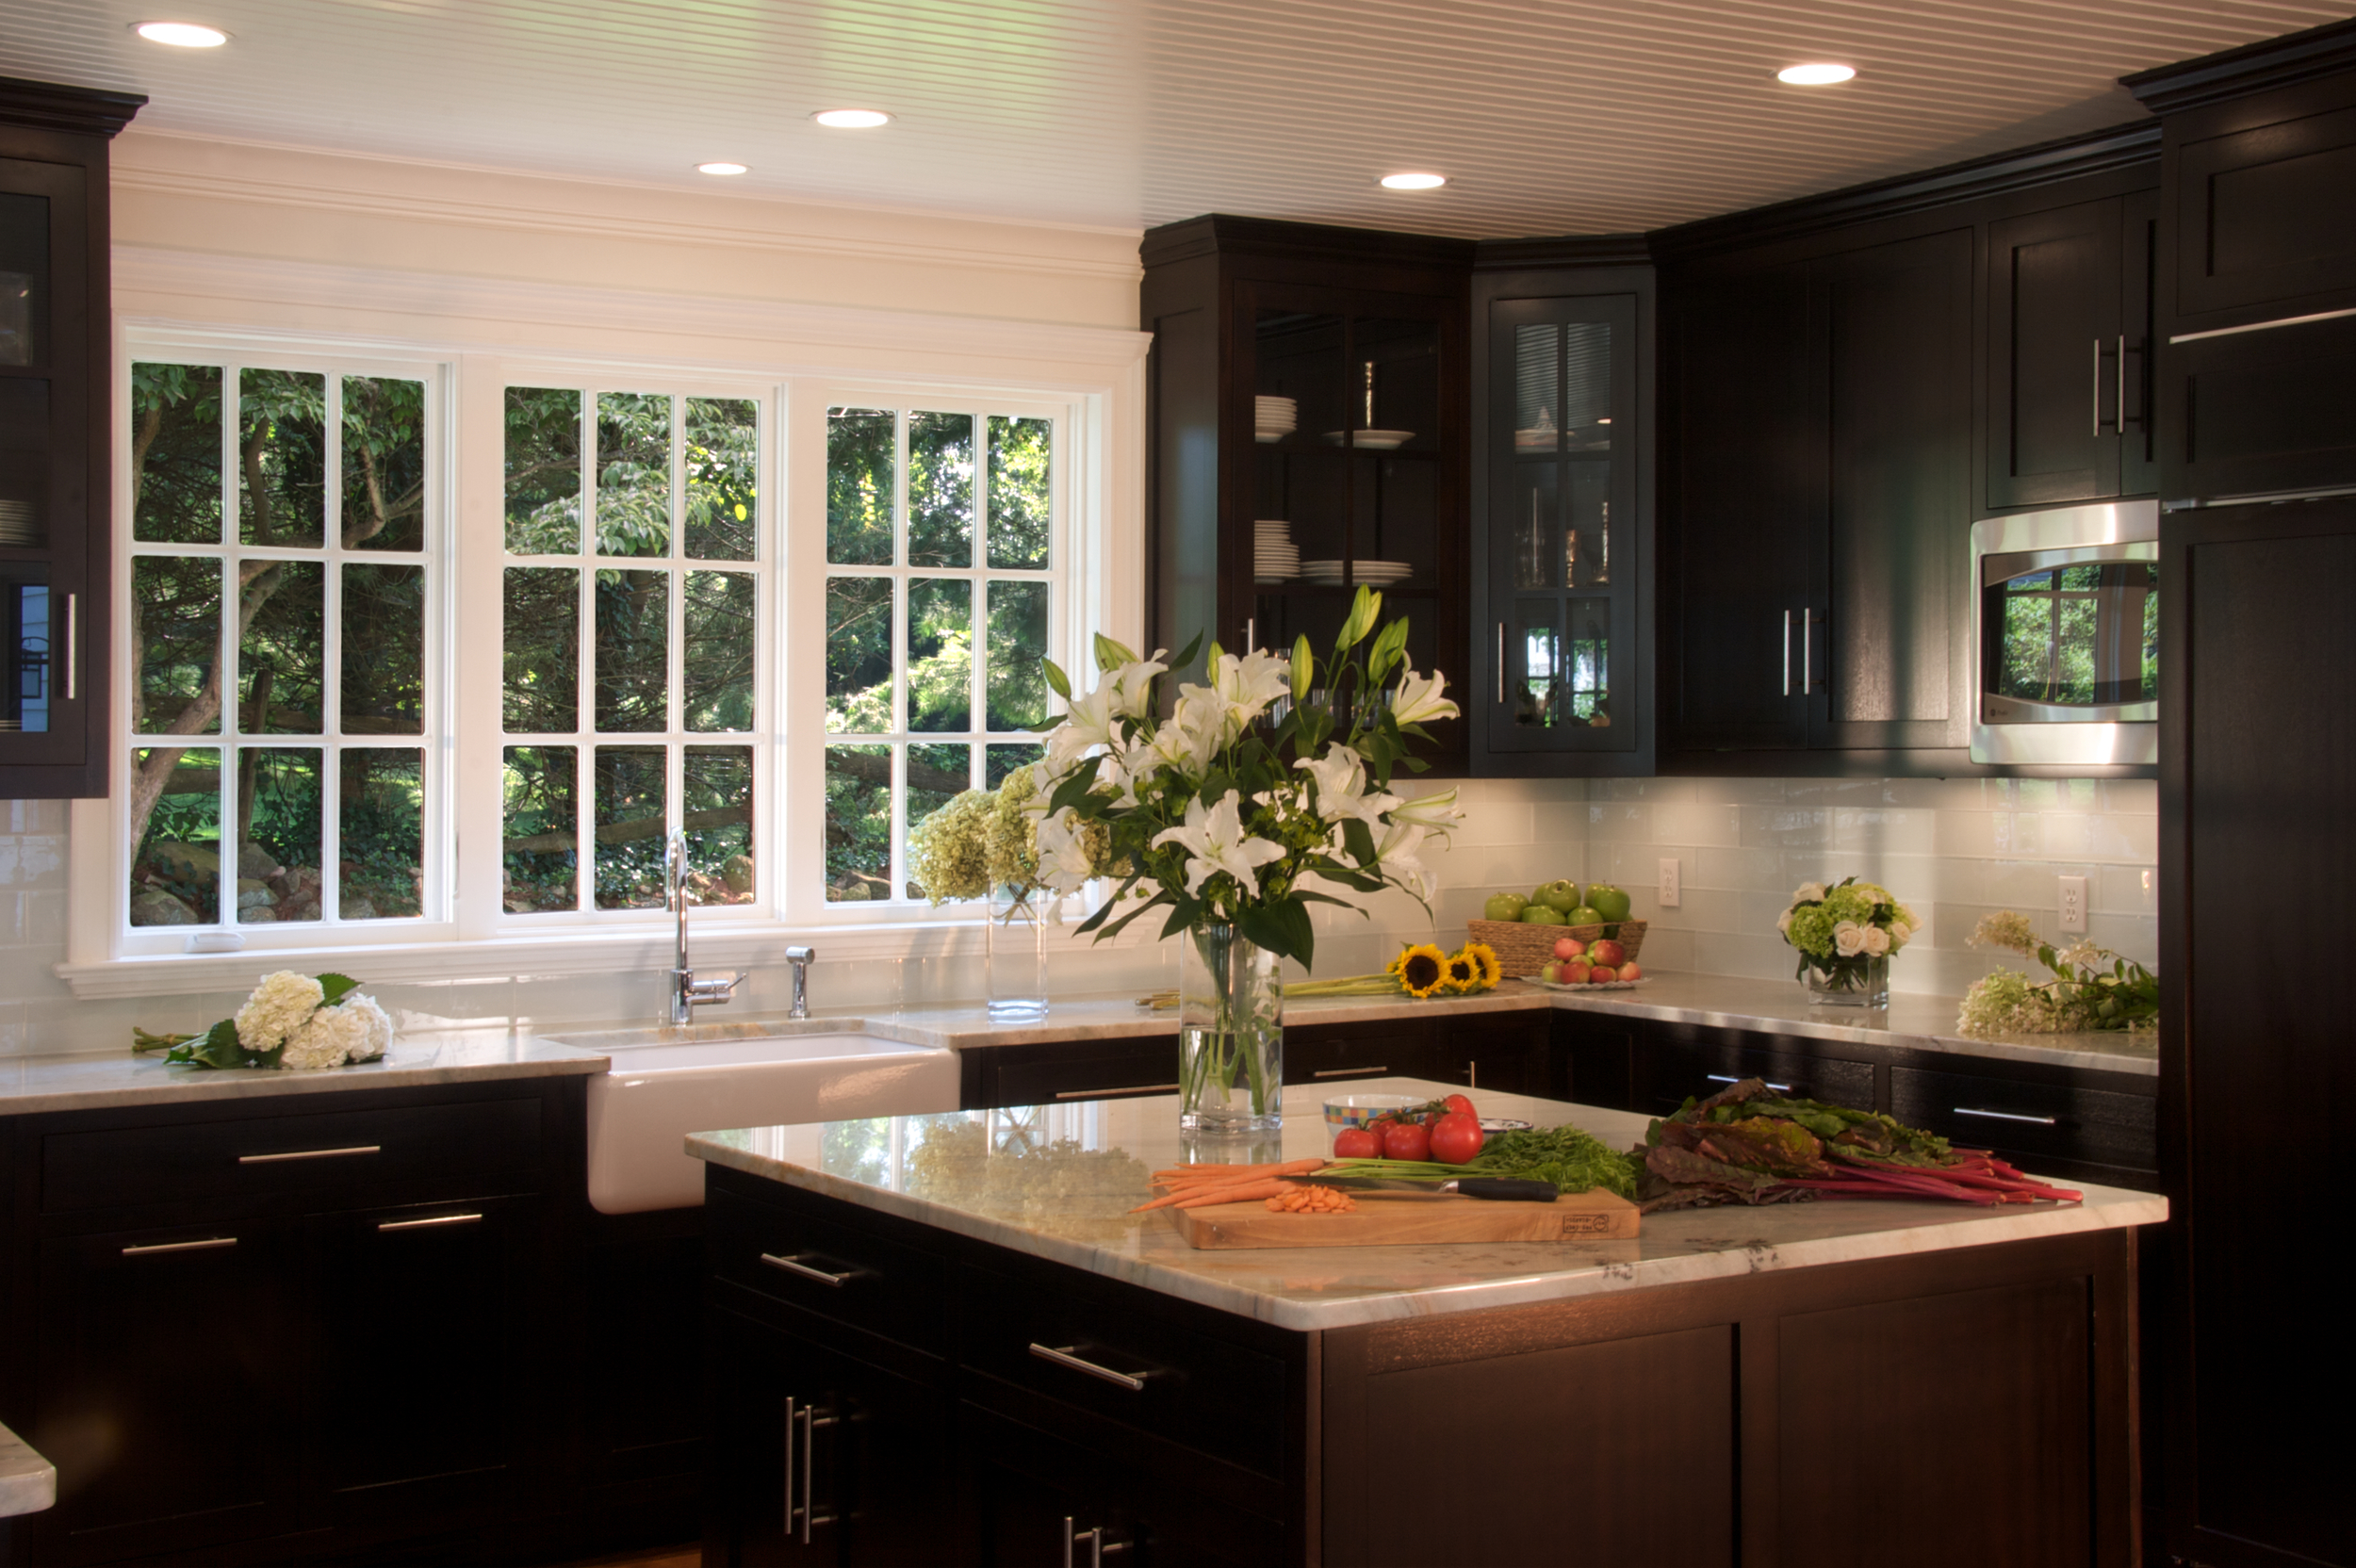 8-kitchen-tight_v3_dm-f.jpg